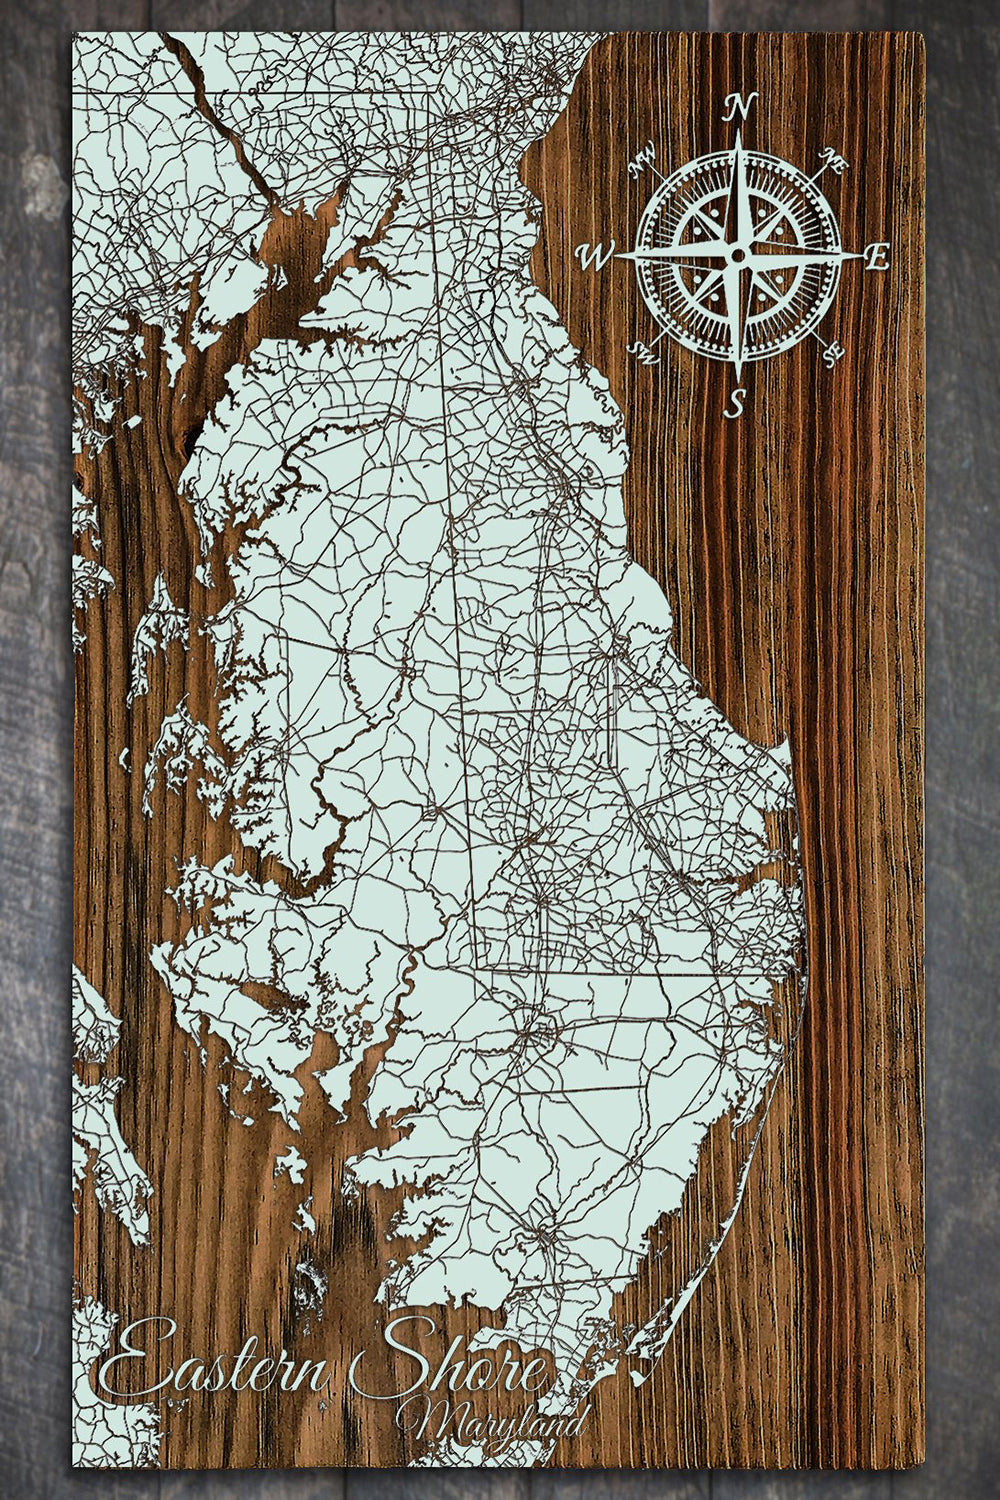 FP Wooden Map - Eastern Shore (Seaglass)